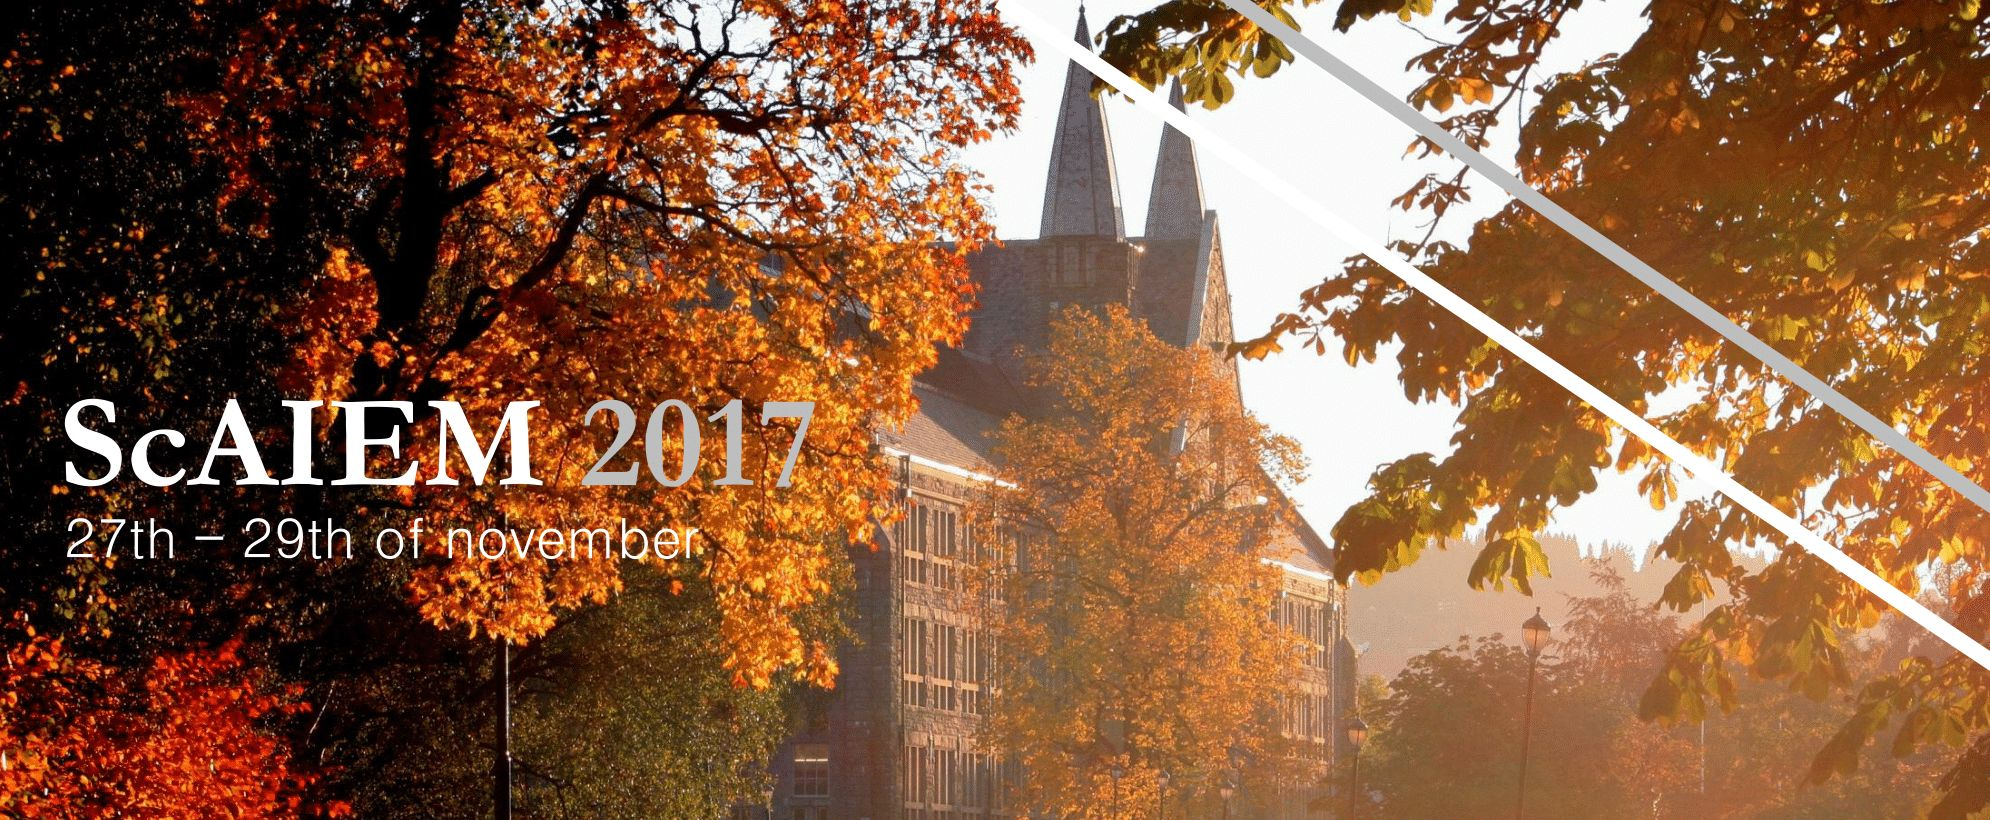 ScAIEM 2017 - NTNU in fall